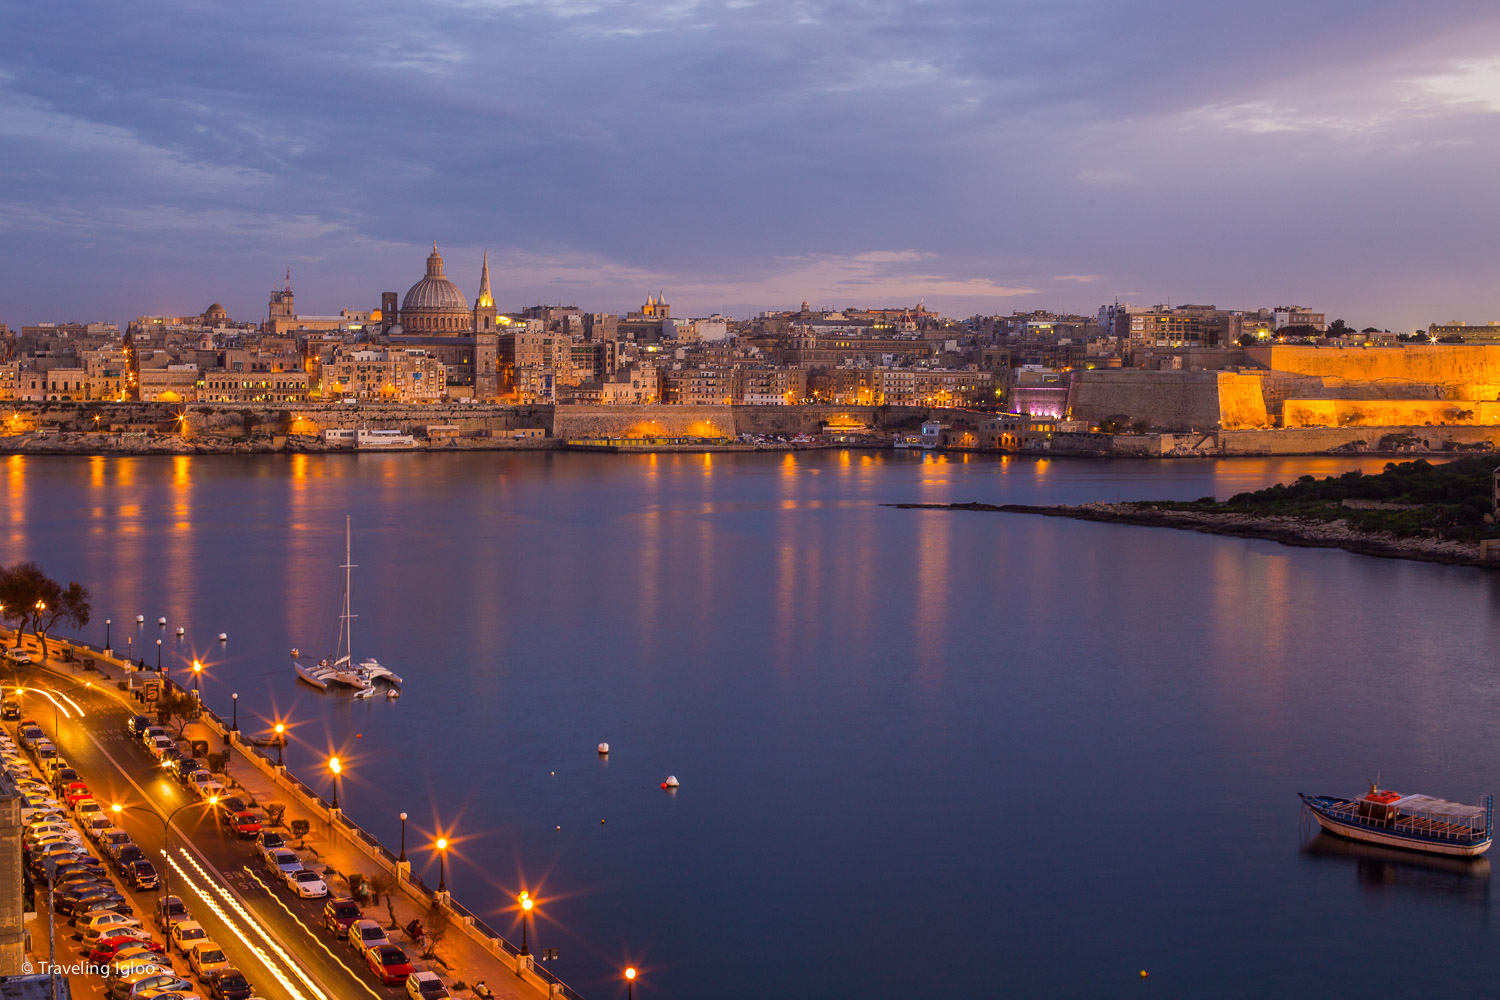 The View of Valletta from the rooftop of our hotel